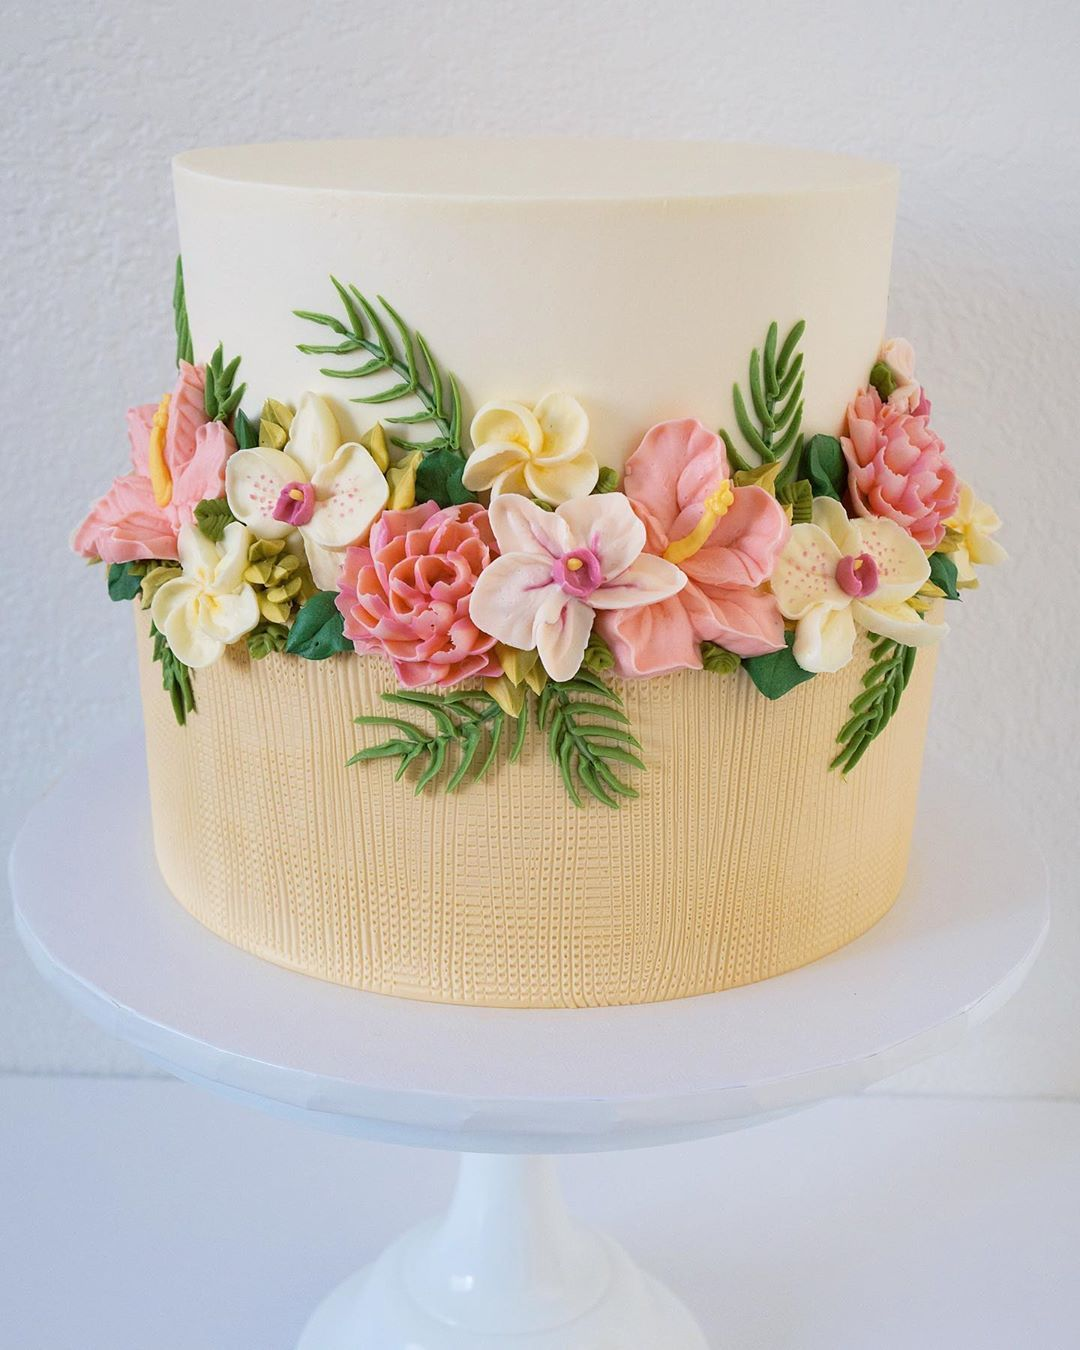 Cake Artist Leslie Vigil Creates Gorgeous Cakes That Look Like They're Embroidered